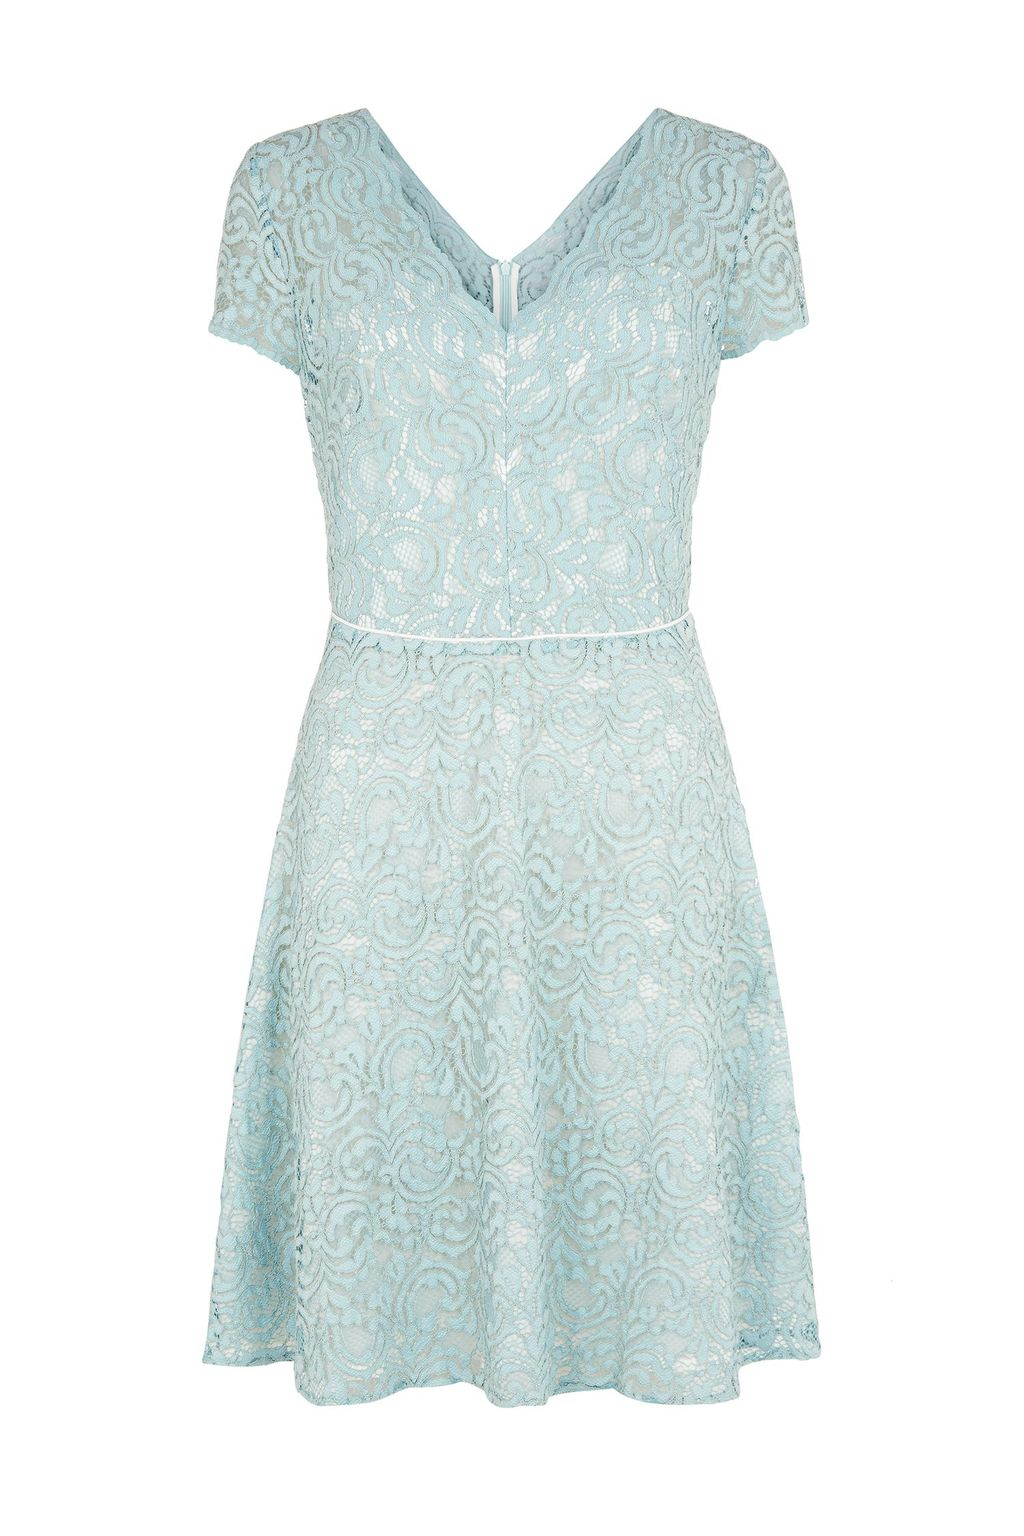 Gardenia Dress, Green - length: mid thigh; neckline: low v-neck; predominant colour: pistachio; fit: fitted at waist & bust; style: fit & flare; fibres: nylon - mix; occasions: occasion; sleeve length: short sleeve; sleeve style: standard; texture group: lace; pattern type: fabric; pattern size: standard; pattern: patterned/print; season: s/s 2015